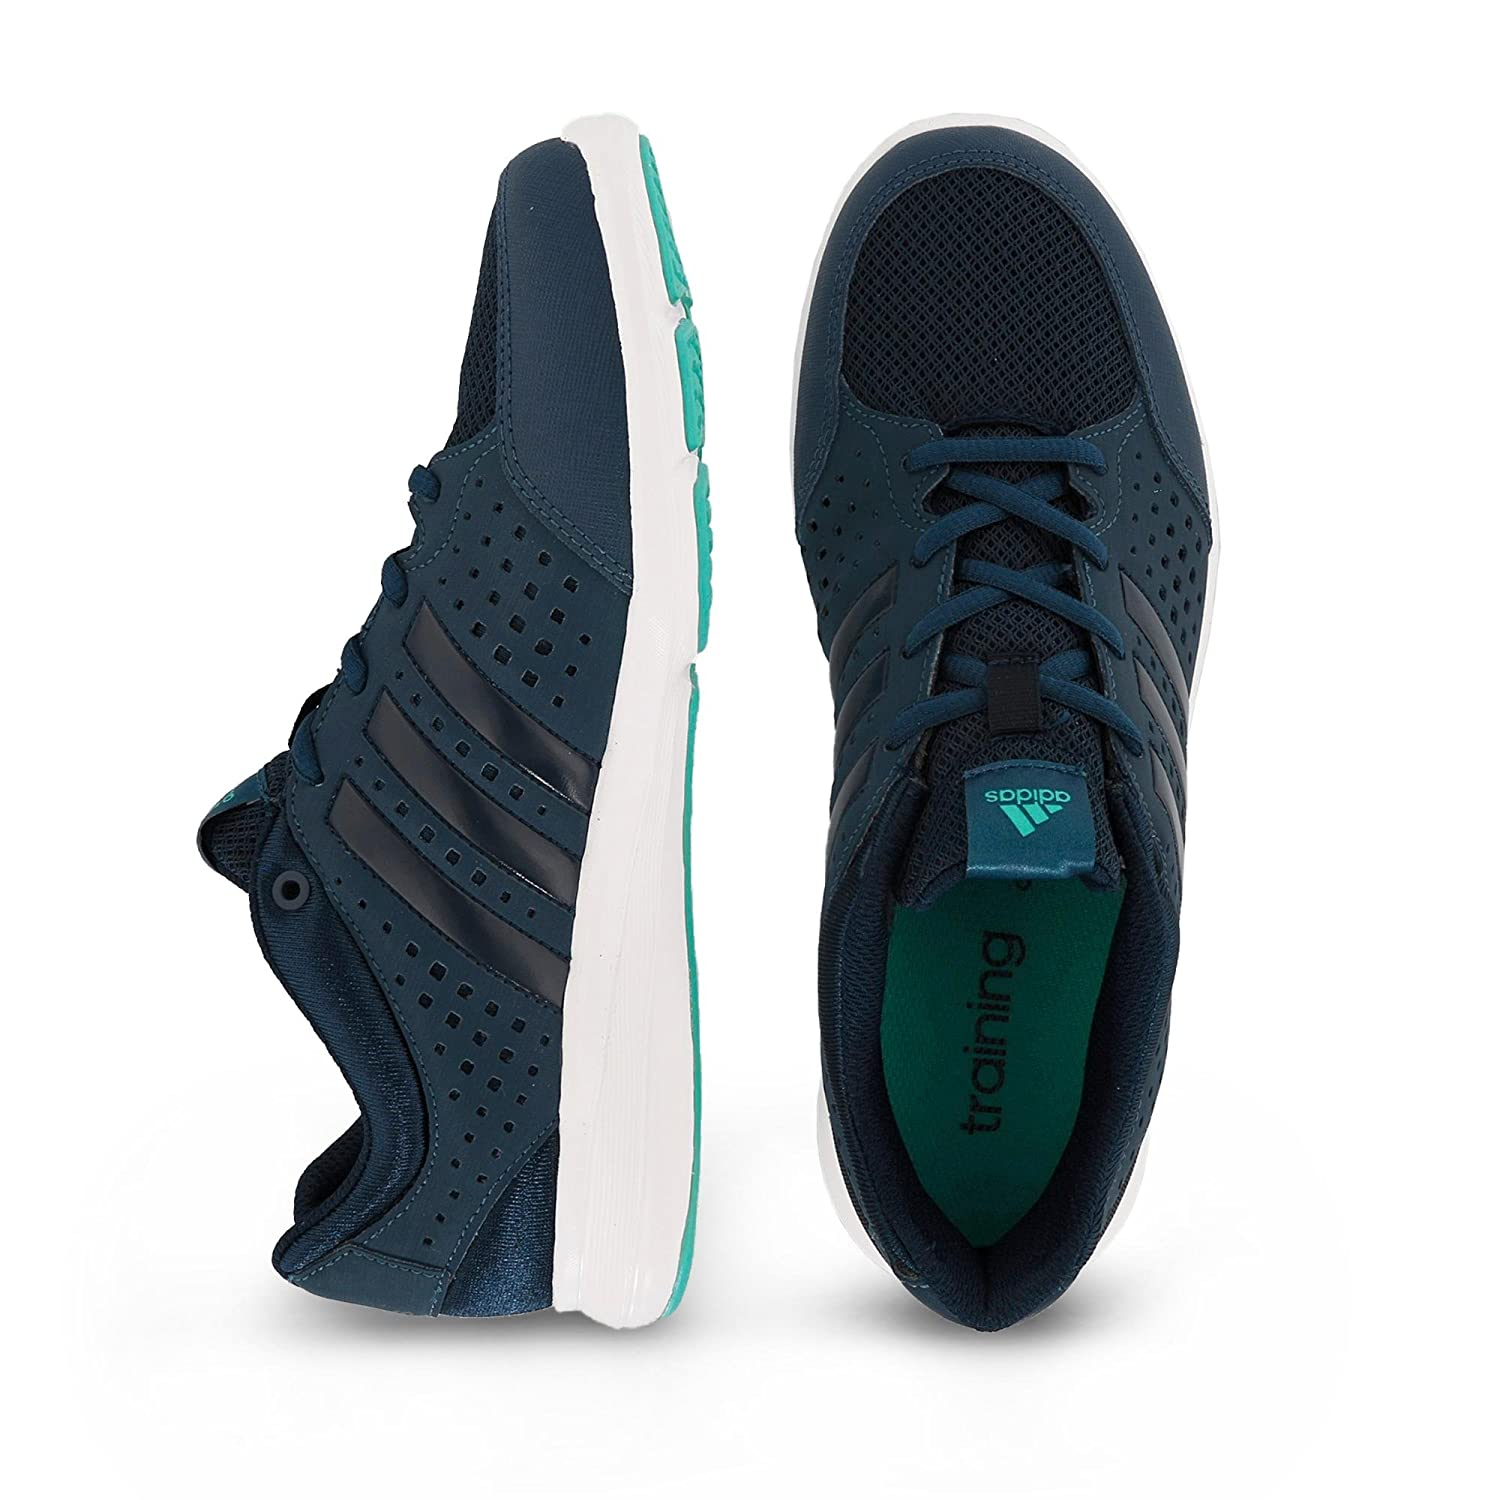 info for c82ef 60a9b adidas Arianna III, Womens Fitness Shoes Amazon.co.uk Shoes